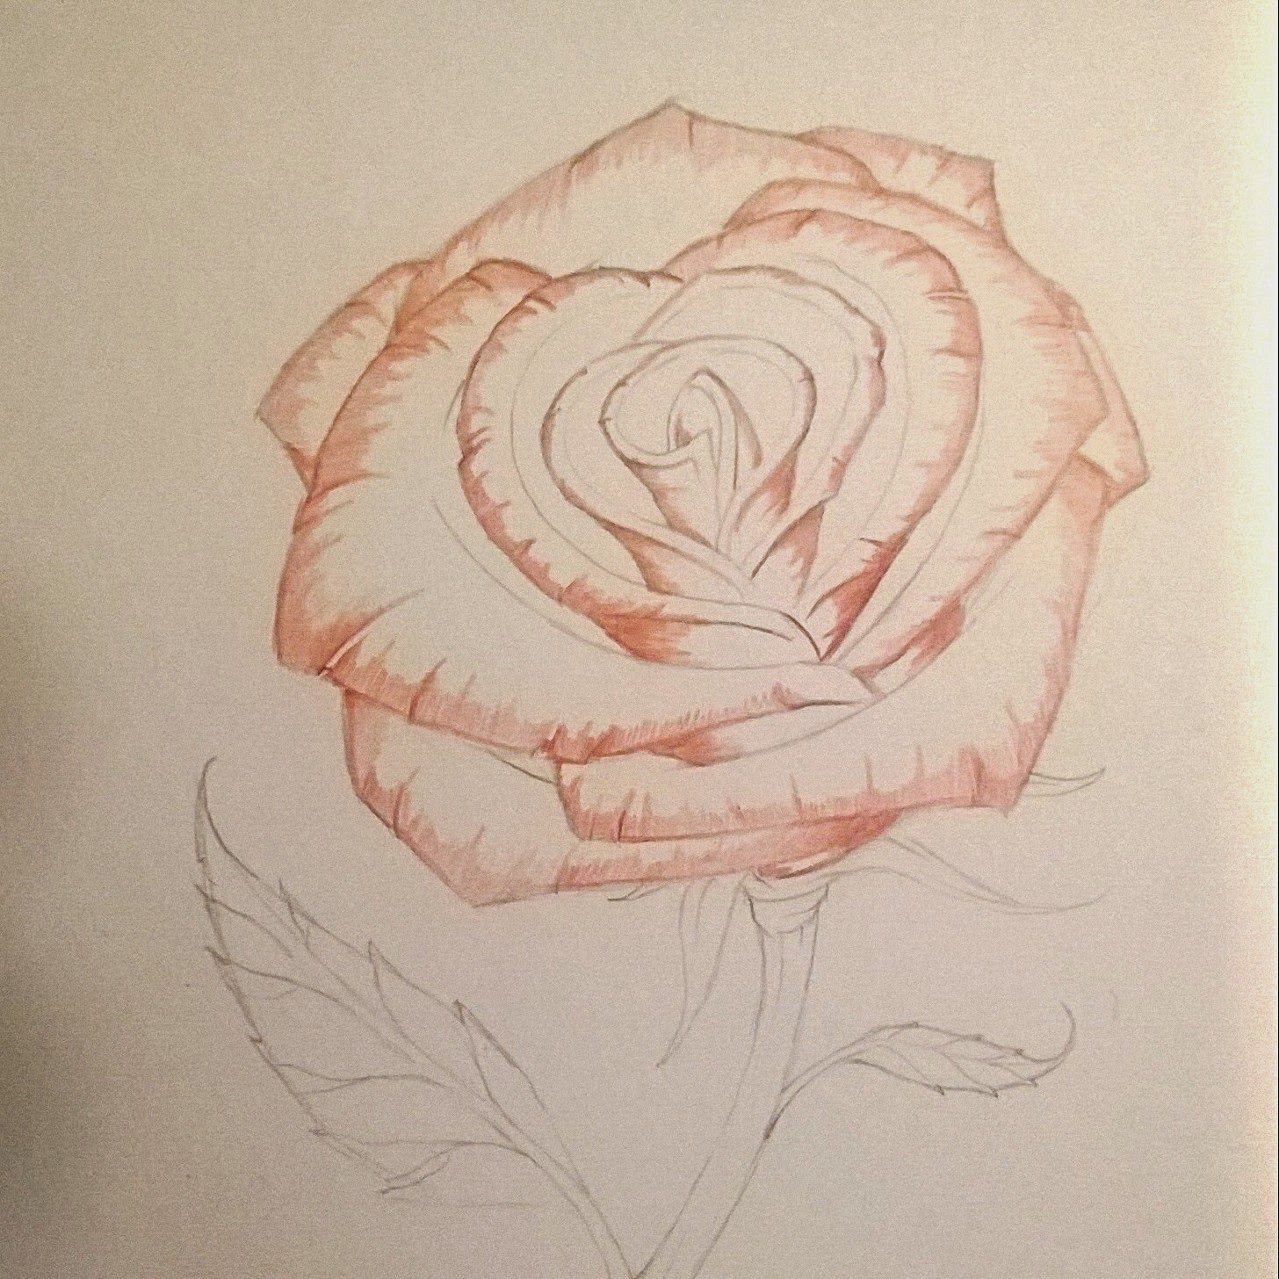 Drawn red rose pencil step How Pencils the lovely Brown